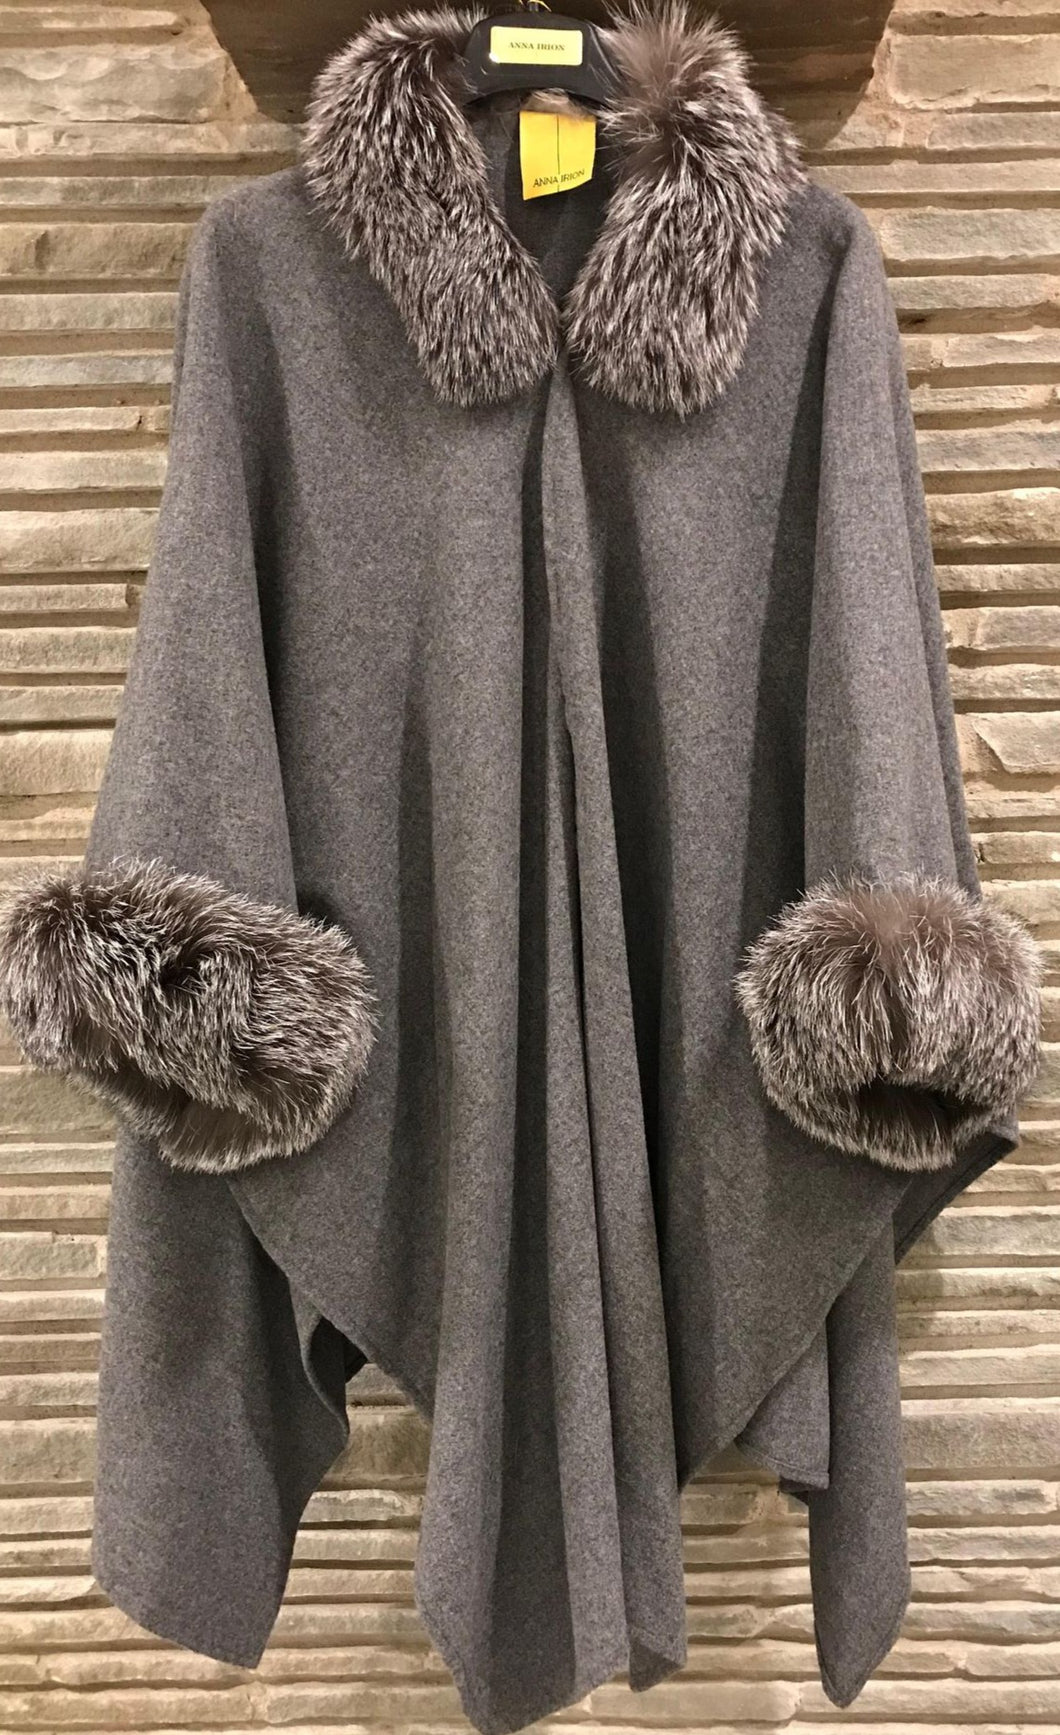 Loro 100% Italian Cashmere wrap in Medium Heather Gray Shade